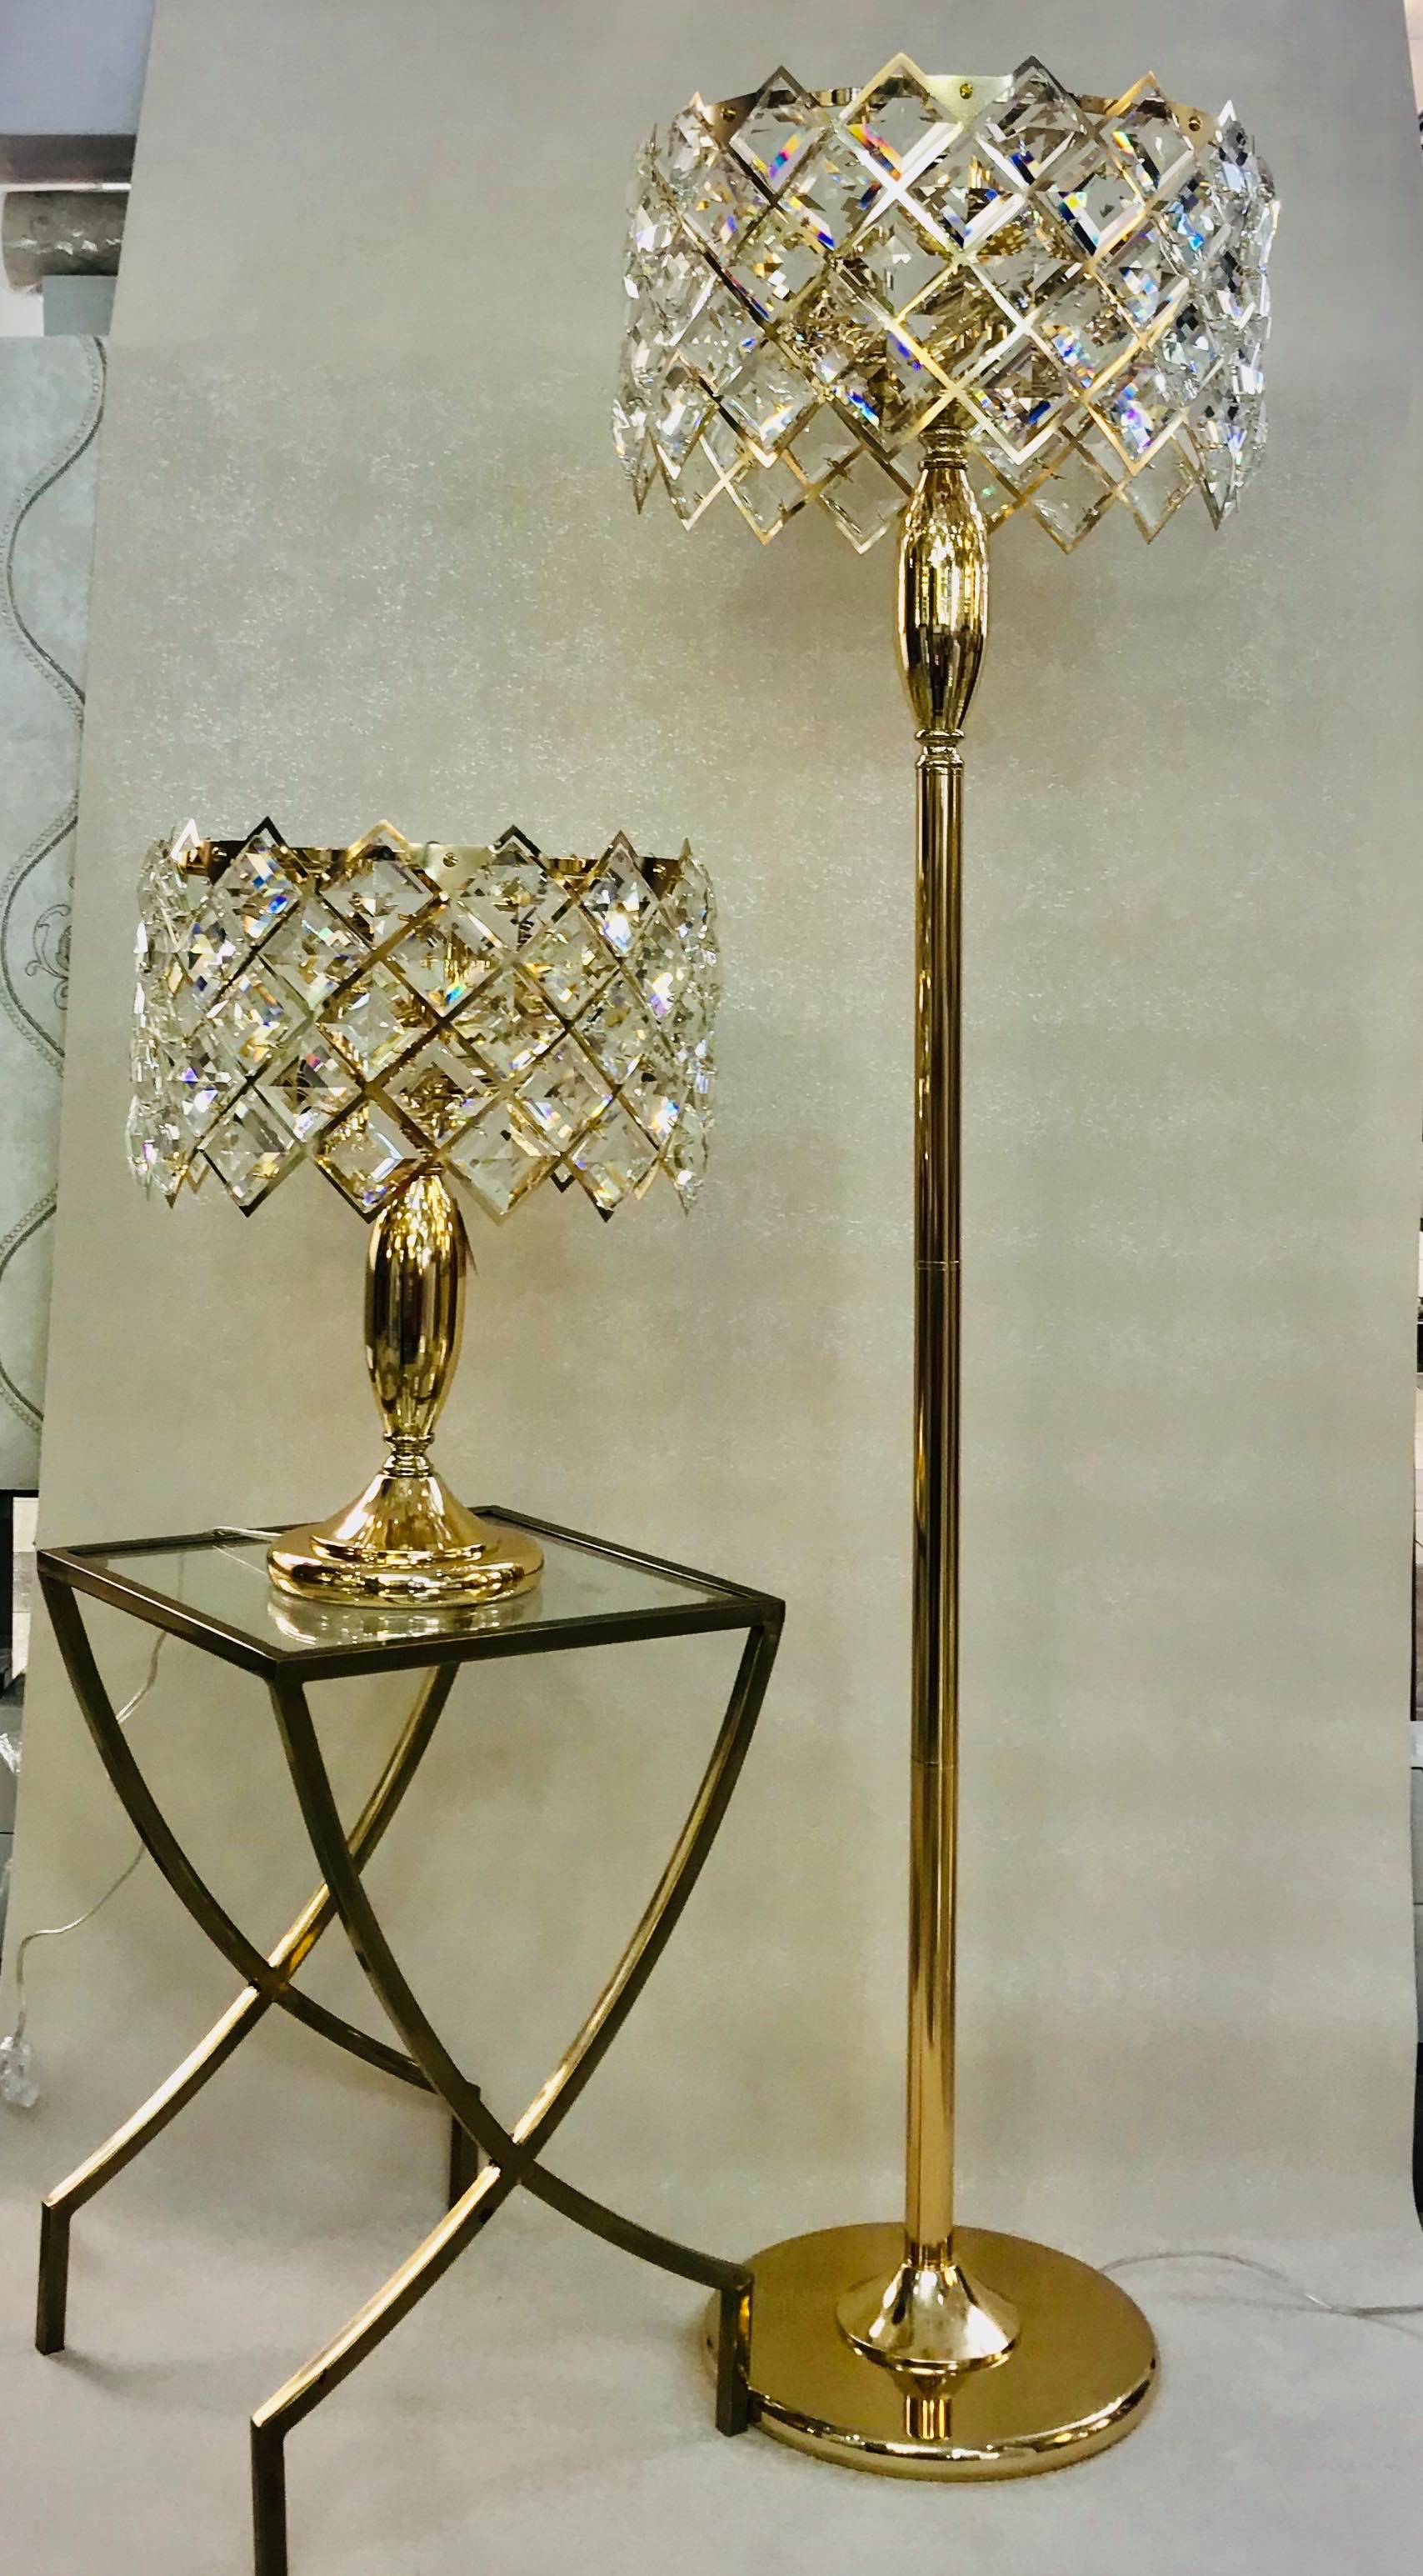 Triangular Crystals & Metal Lamps Set